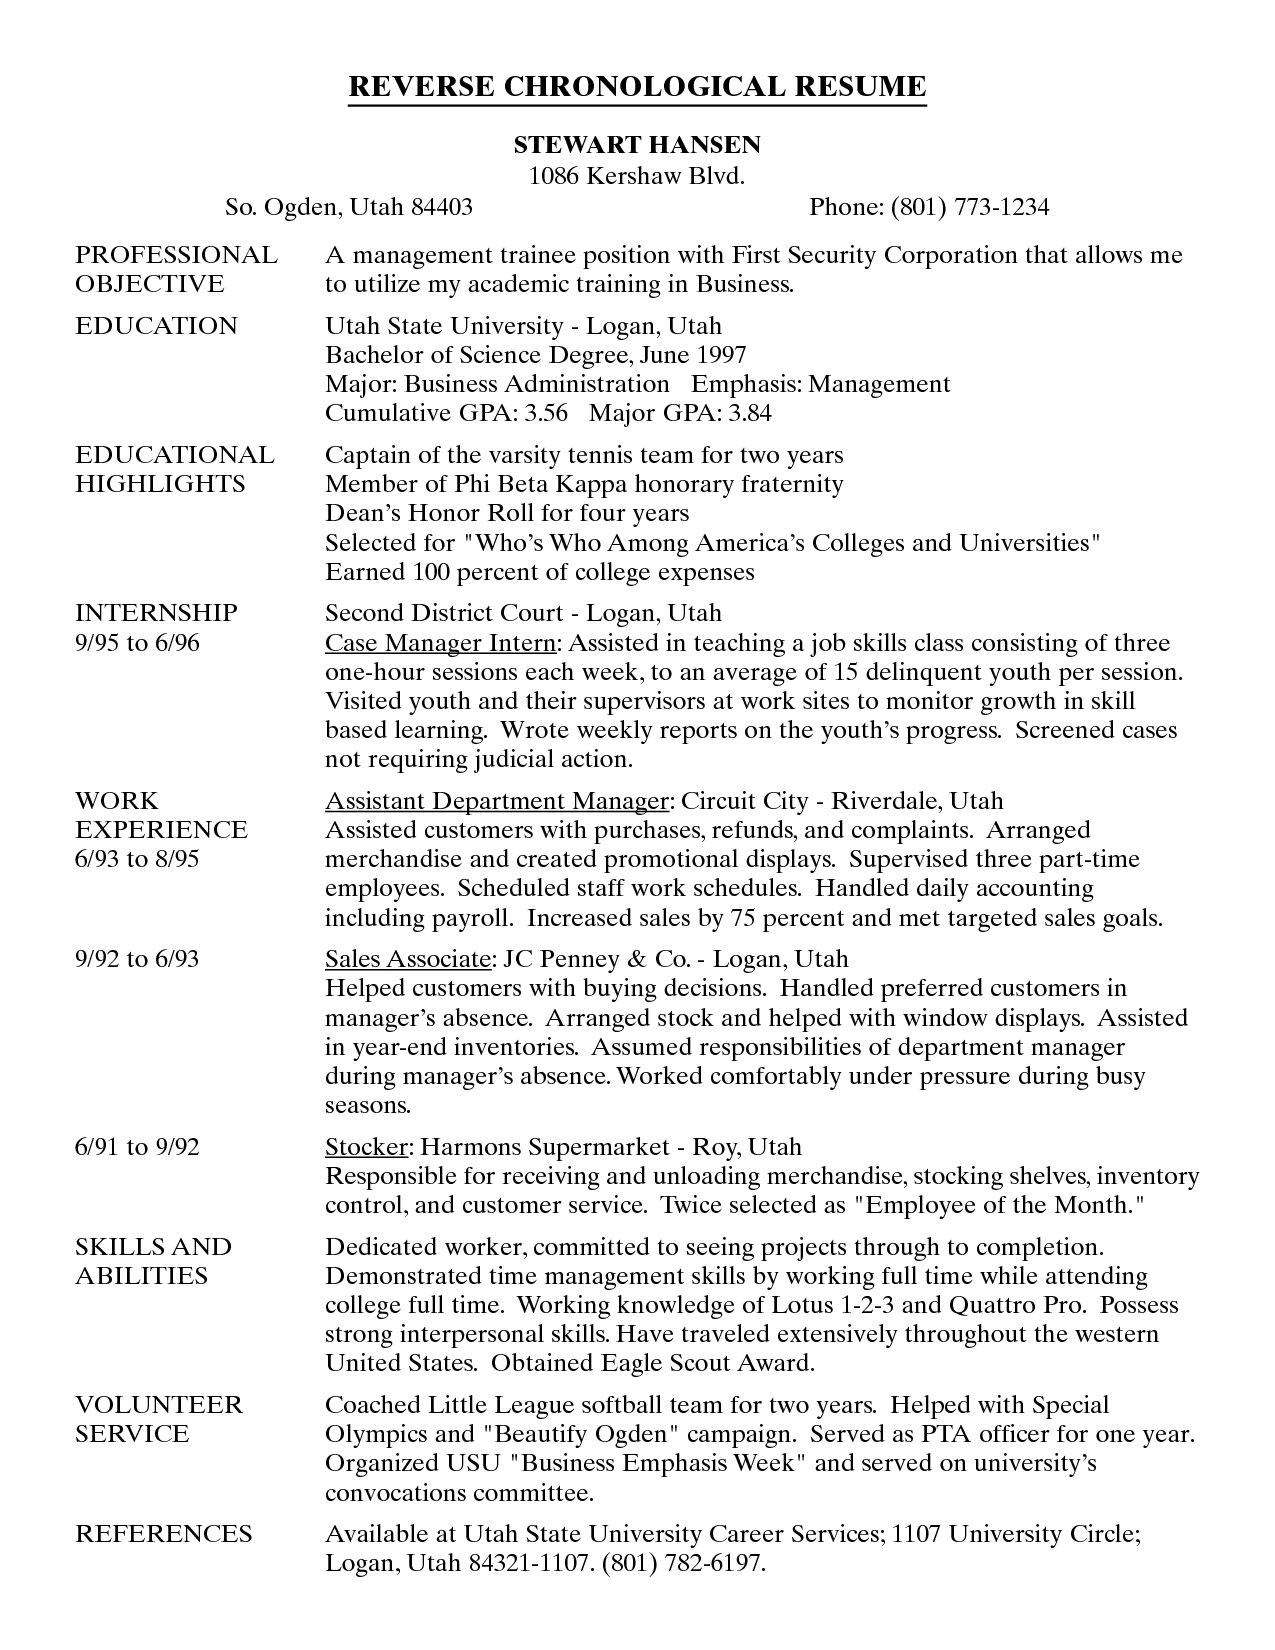 resume What Is A Chronological Resume chronological order resume example dc0364f86 the reverse example